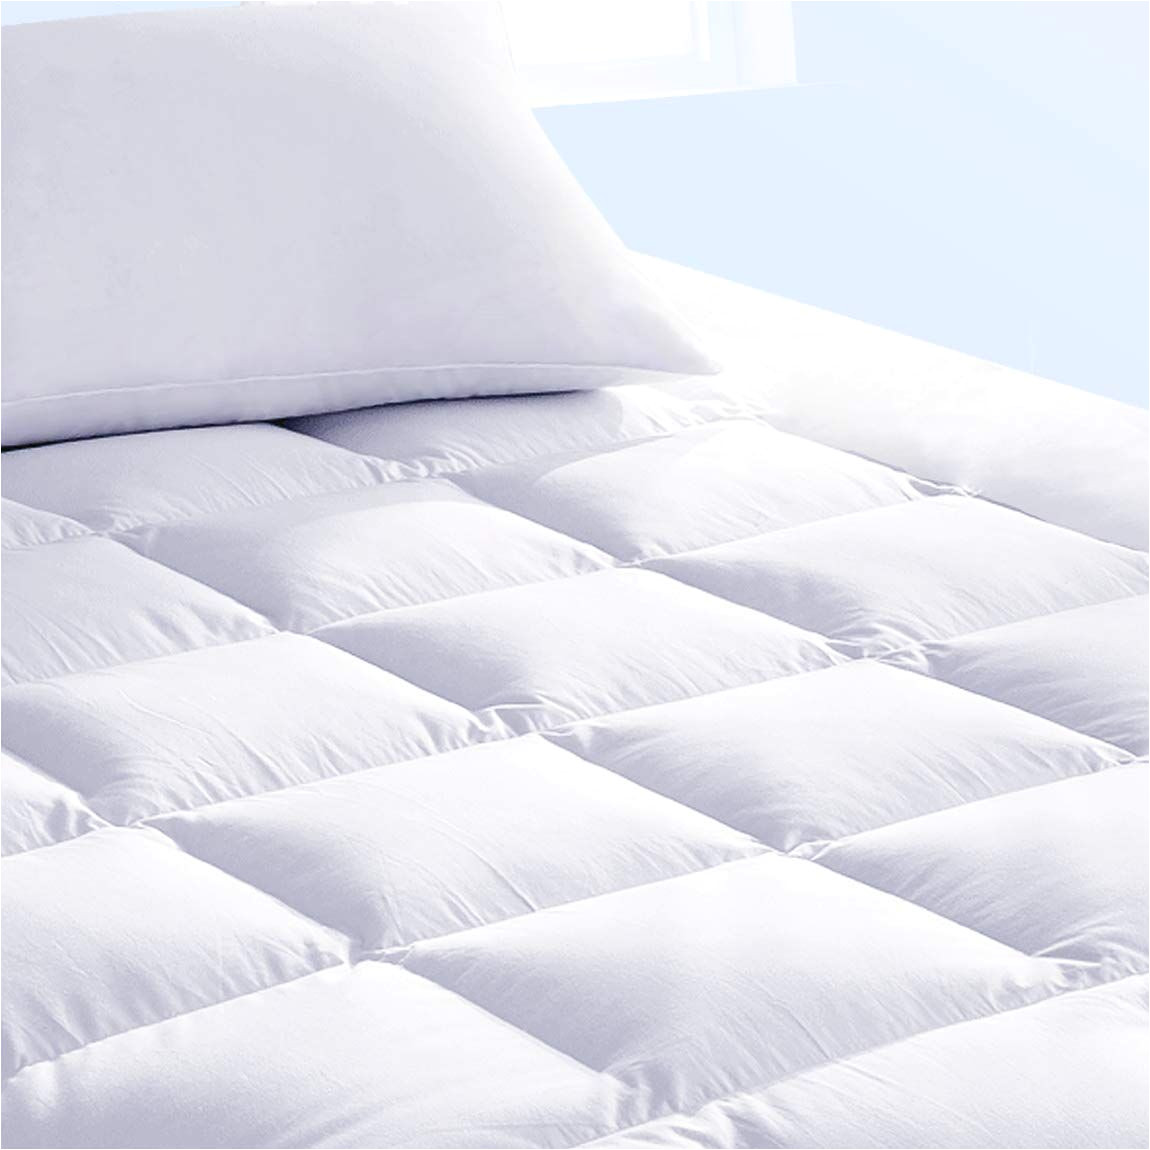 What is the Difference Between Down and Down Alternative Pillow Pure Brands Mattress topper and Mattress Pad Protector In One